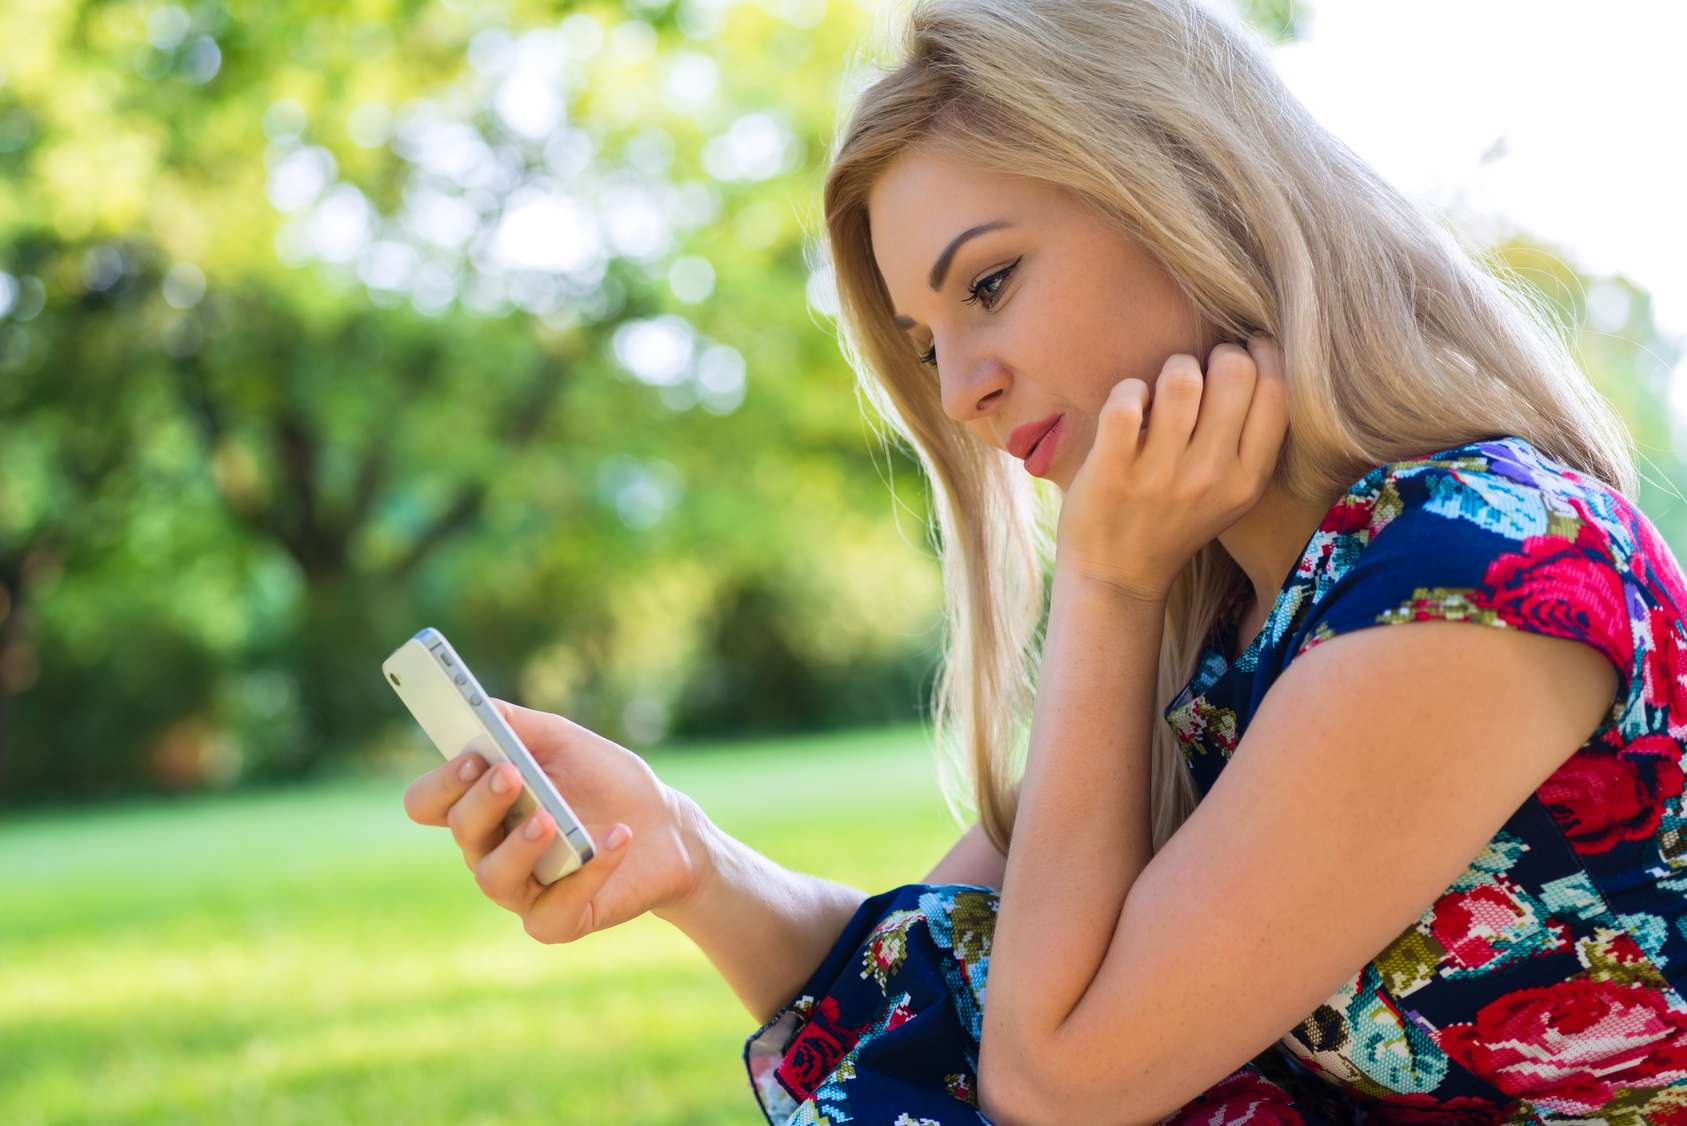 Lady online dating